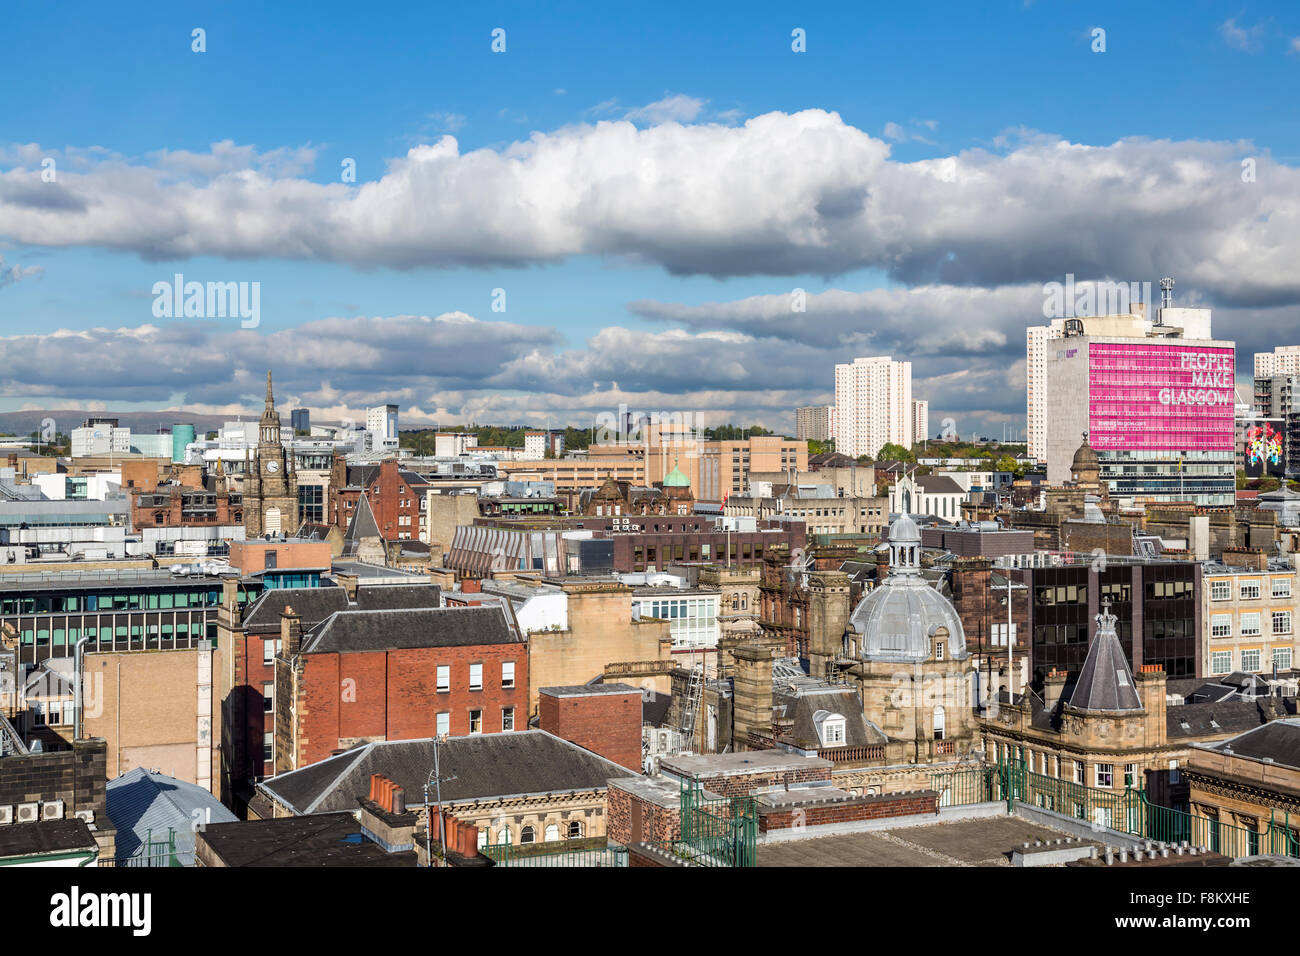 View looking North East over Glasgow city centre  from the Lighthouse Tower, Scotland, UK Stock Photo